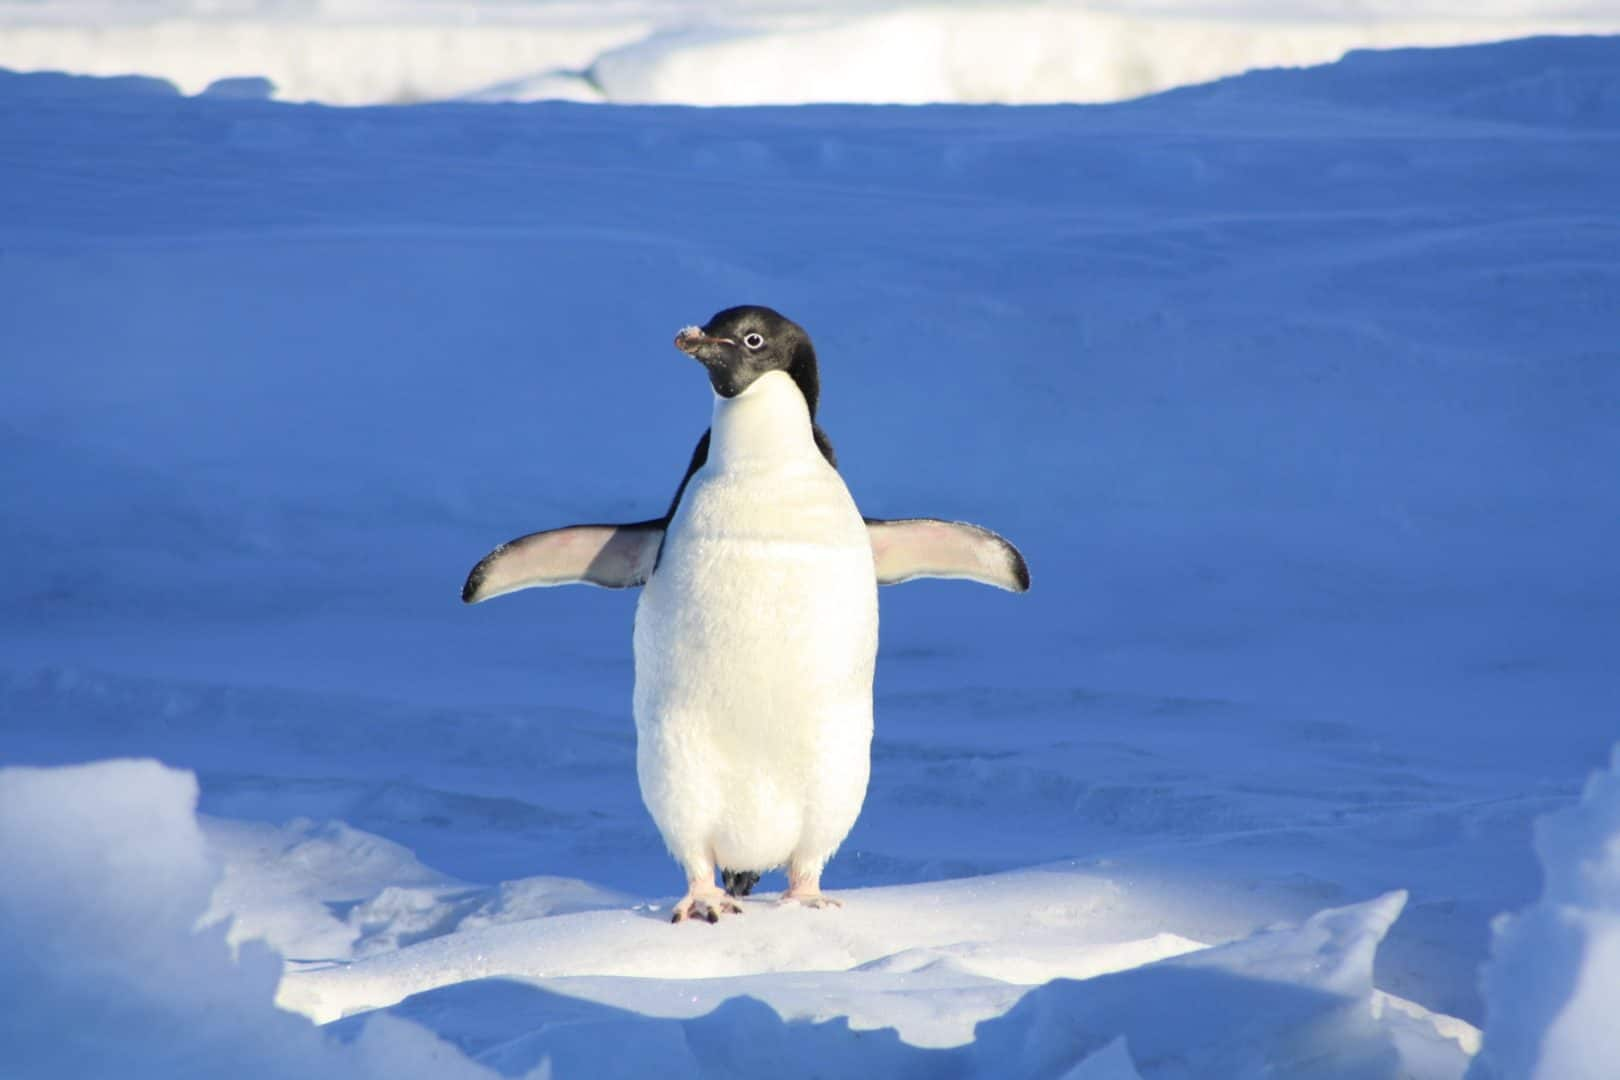 Pingu on Ice